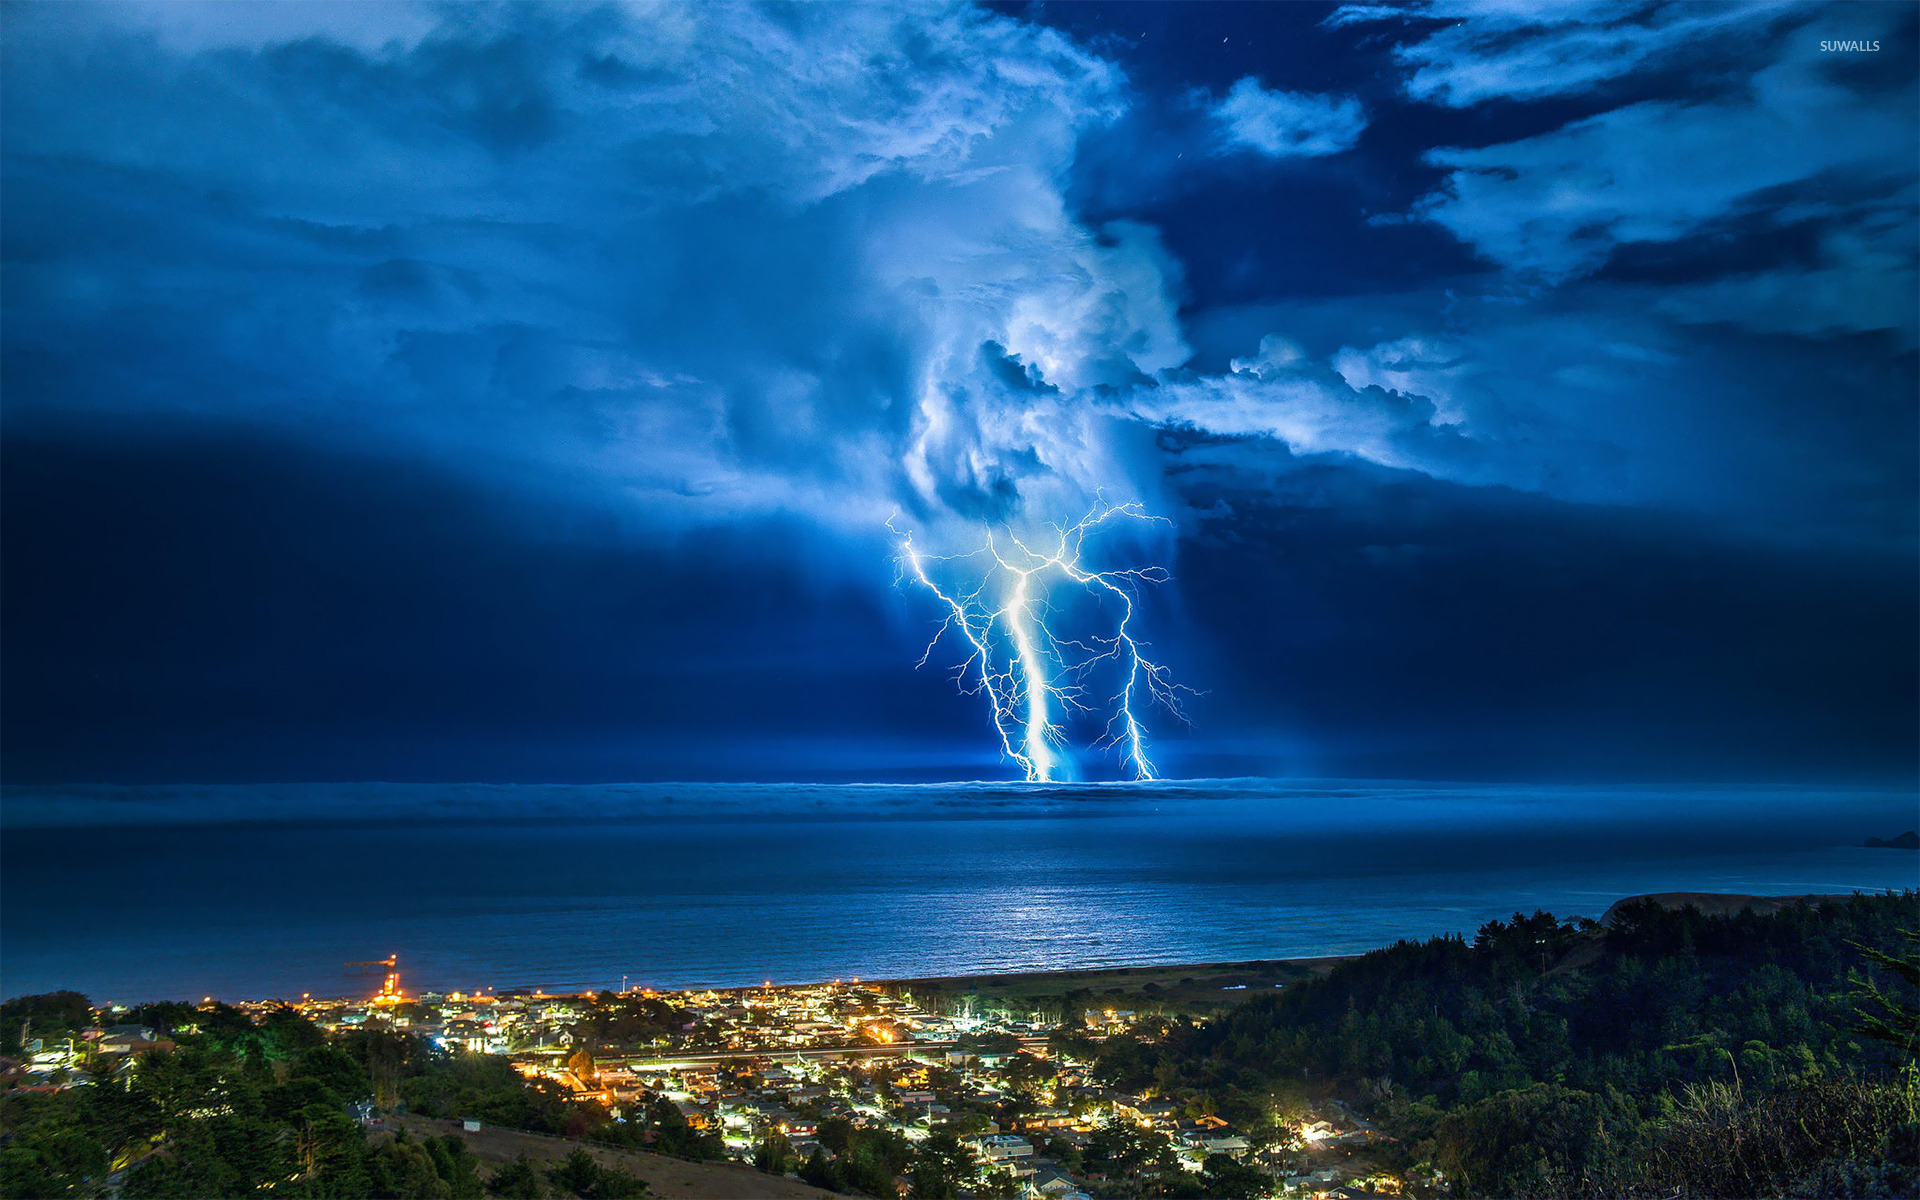 Thunderstorm Over The Coastal Town Wallpaper World HD Wallpapers Download Free Images Wallpaper [1000image.com]